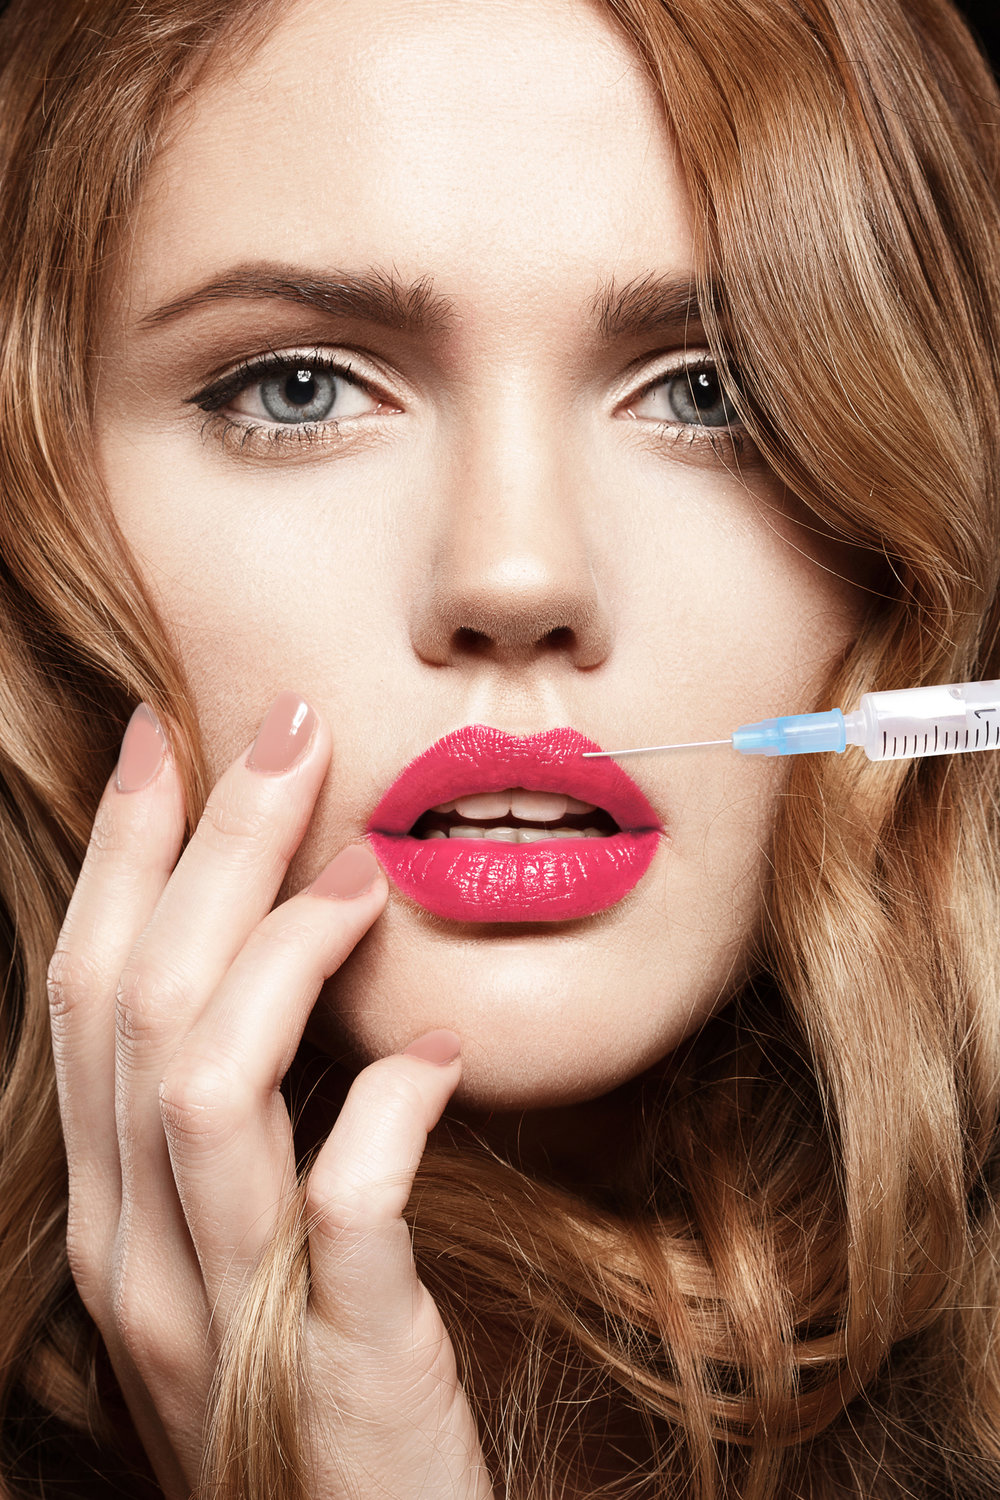 Compliments Lip Fillers   - LipAddict® is also a great product to compliment lip injections/ fillers. The product will enhance and maintain the effects of the procedure, leaving your customers loving their lips even more!The product can be applied immediately after the procedure. Doctors are finishing off lip injections procedure with LipAddict®!Click here to carry LipAddict in your practice!